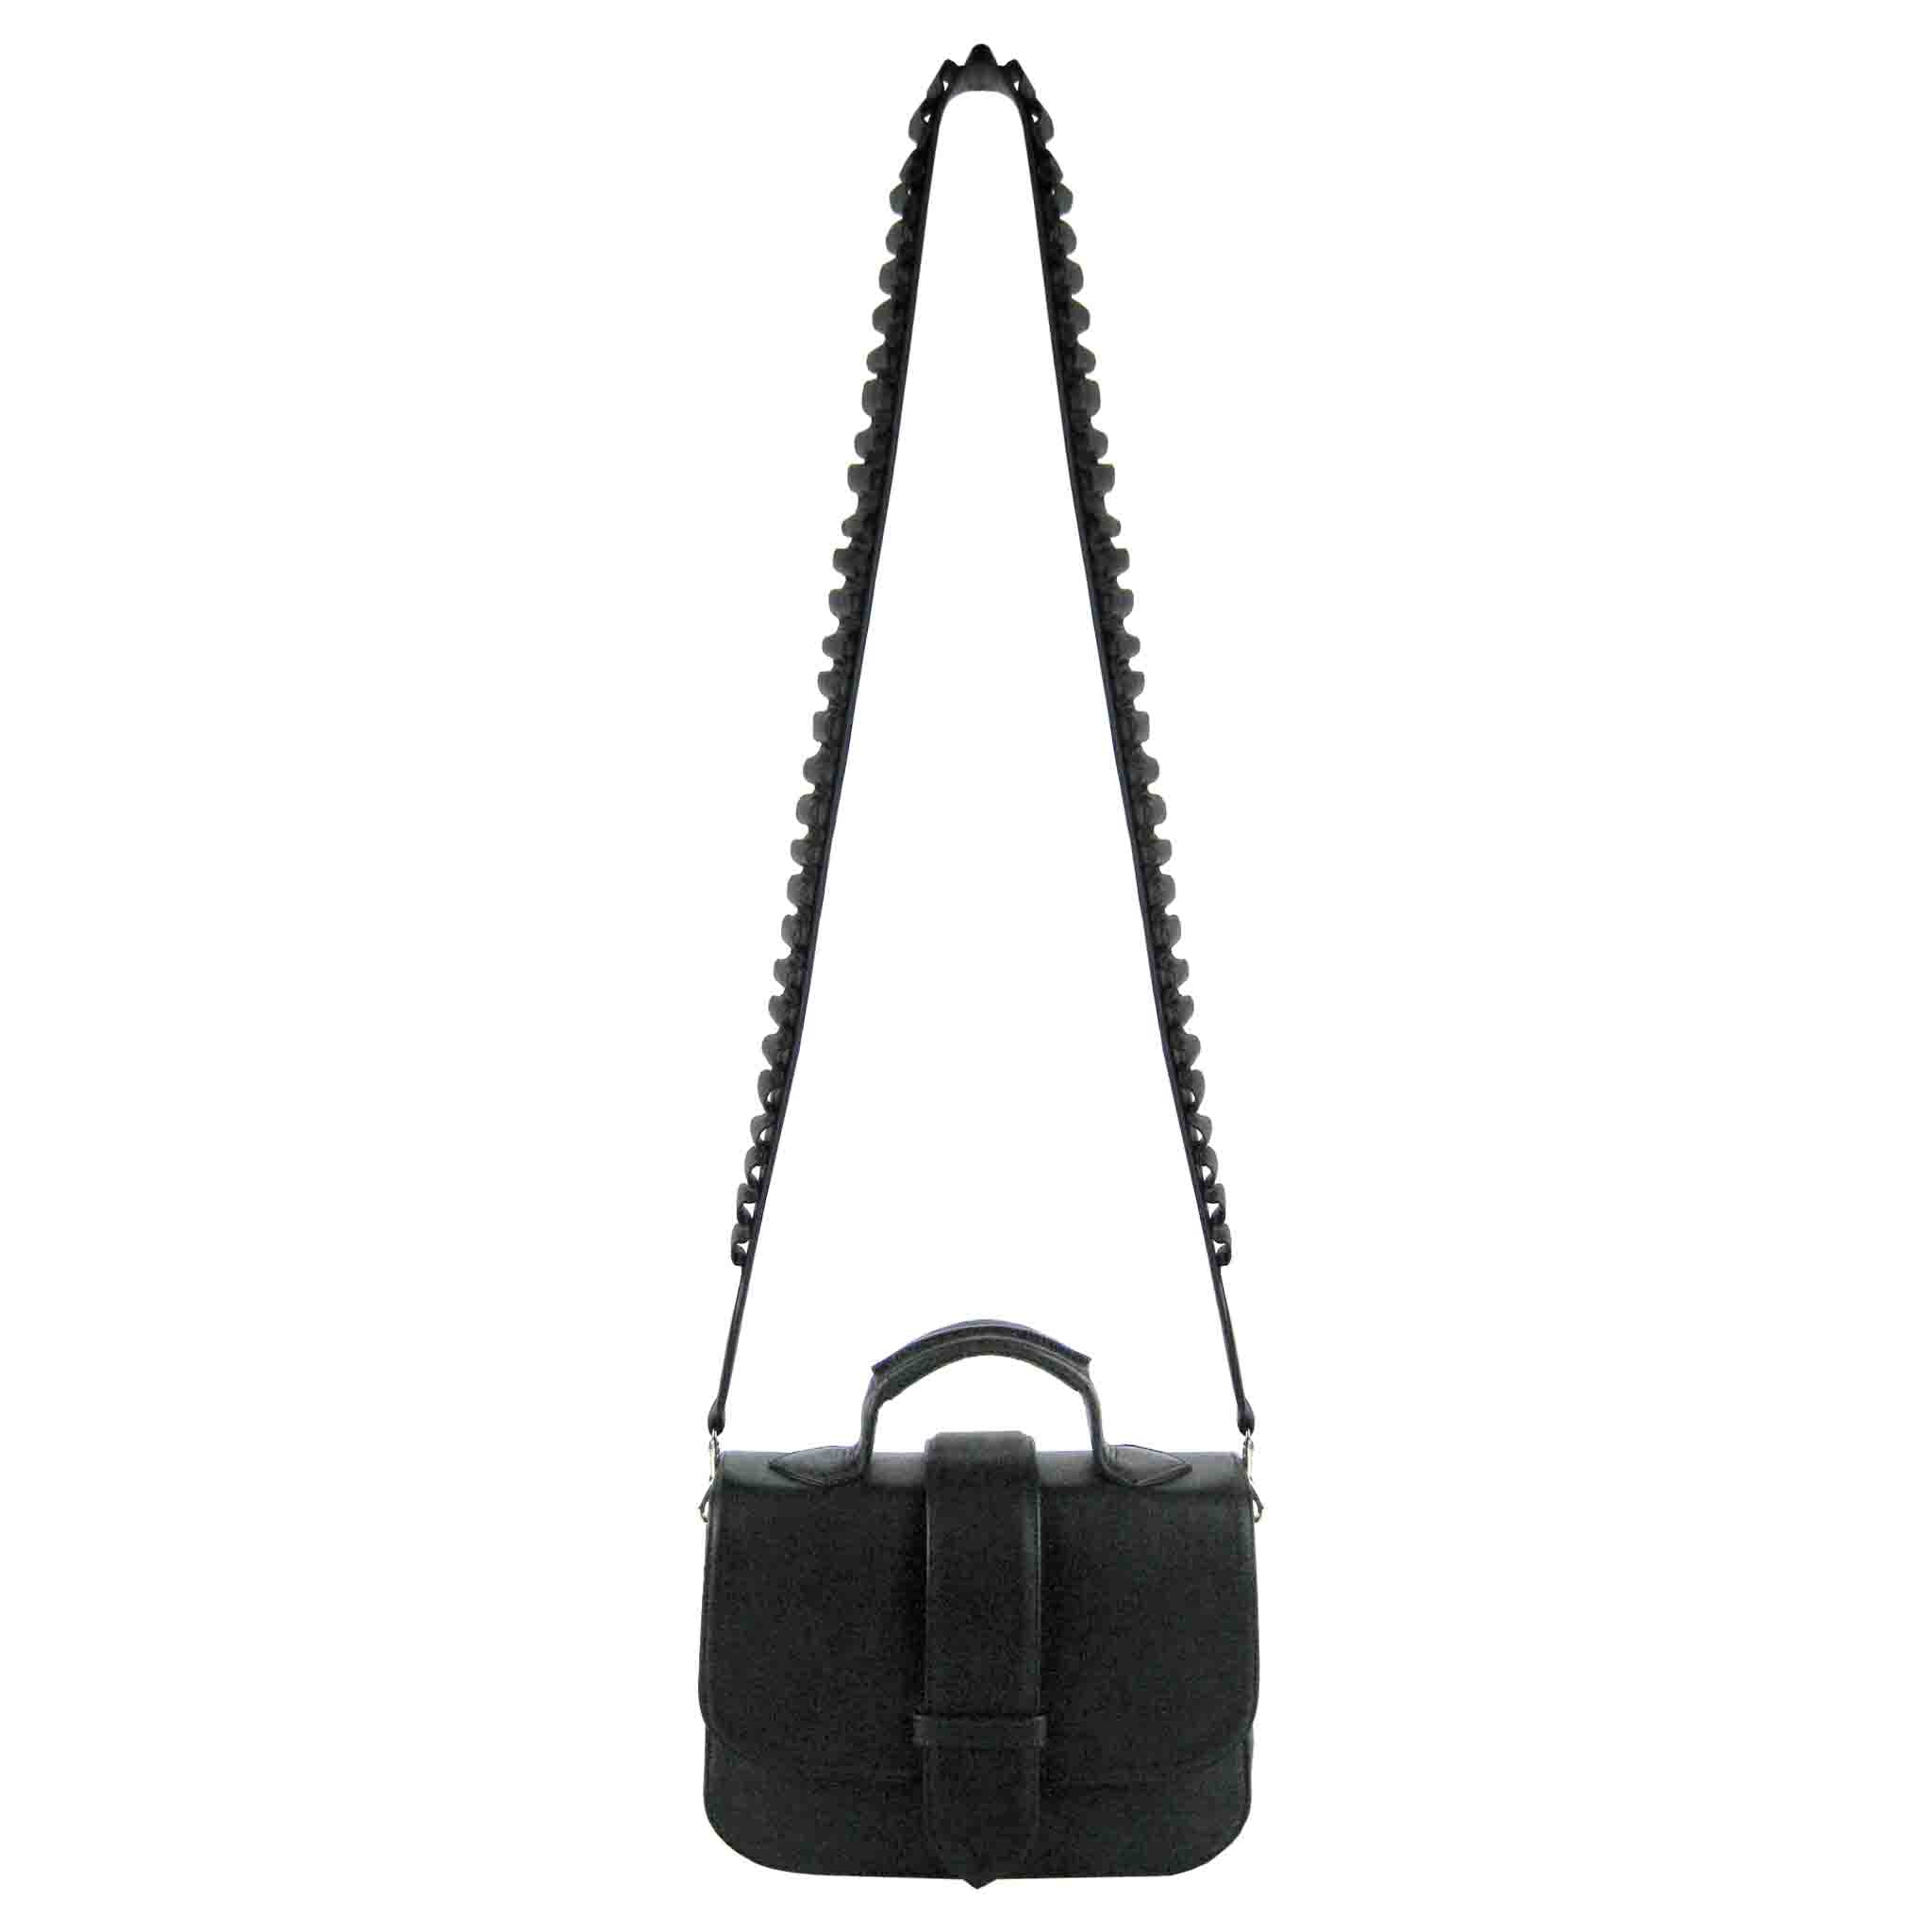 WOMEN'S SINGLE FLAP CROSSBODY SCHULRANZEN BAG